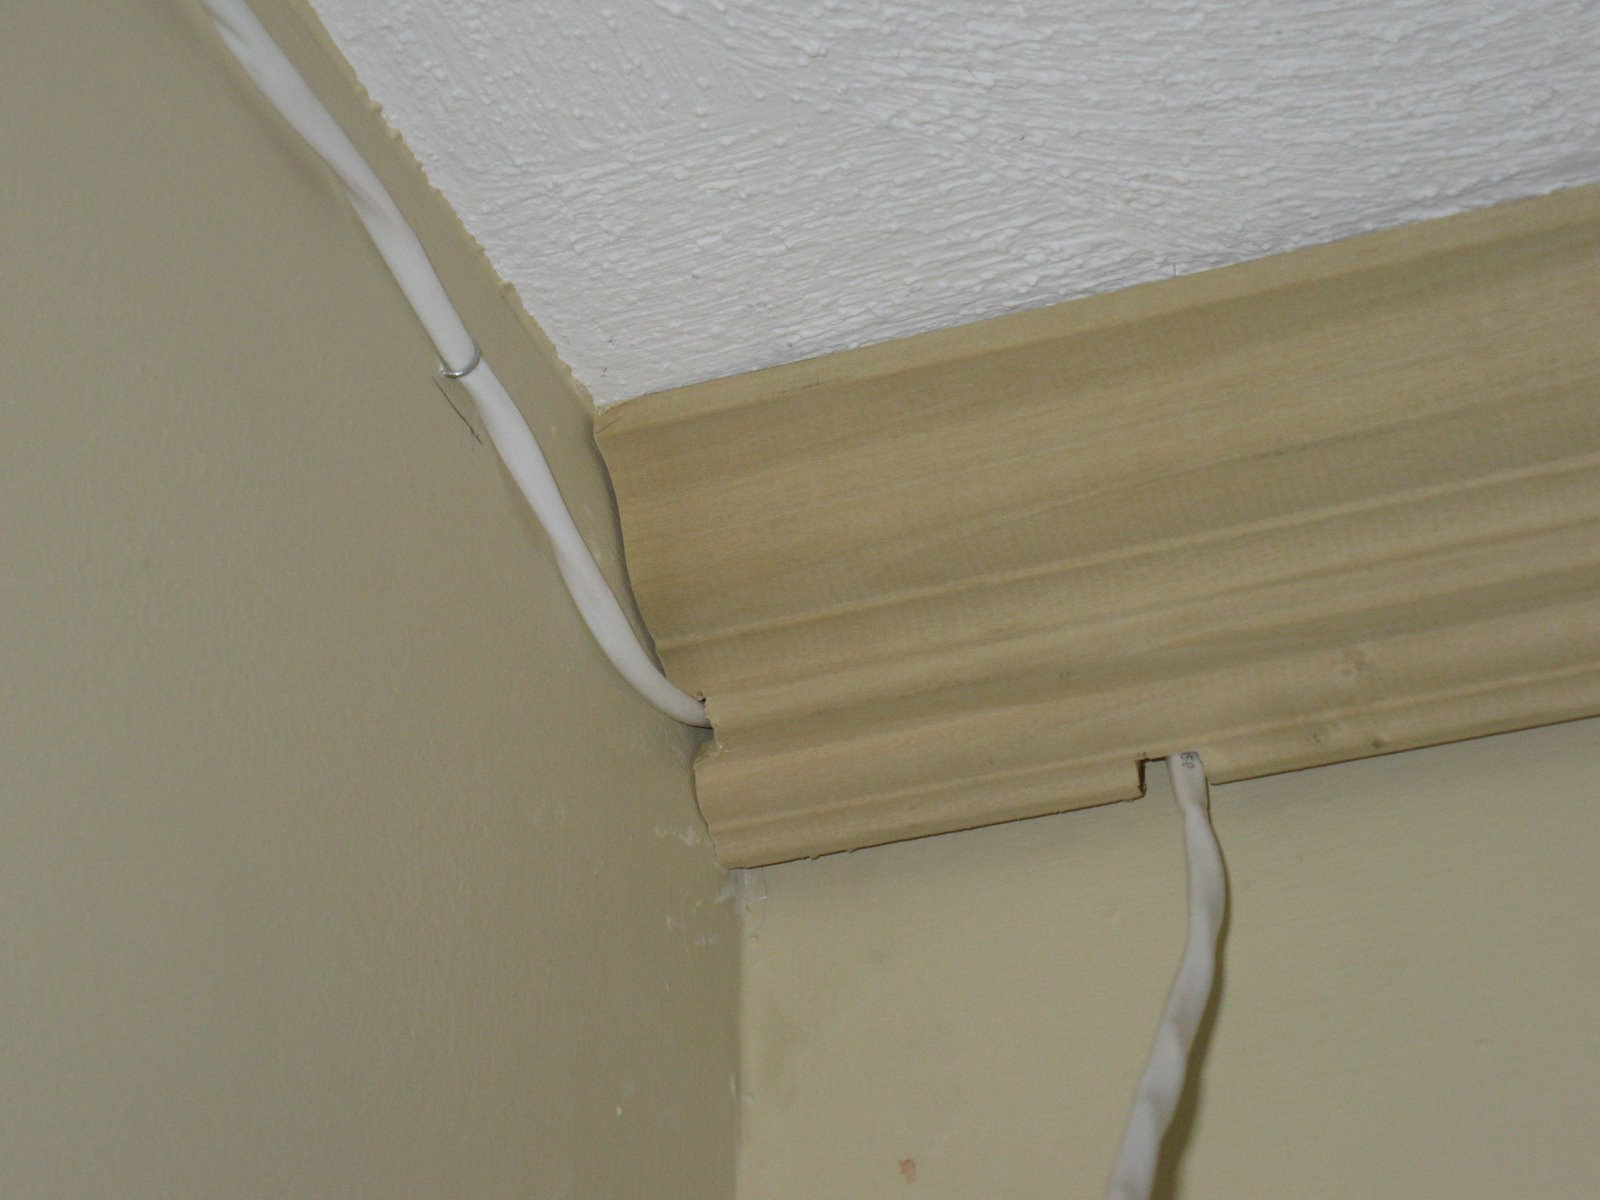 How To Install Speaker Wire Behind Crown Molding A